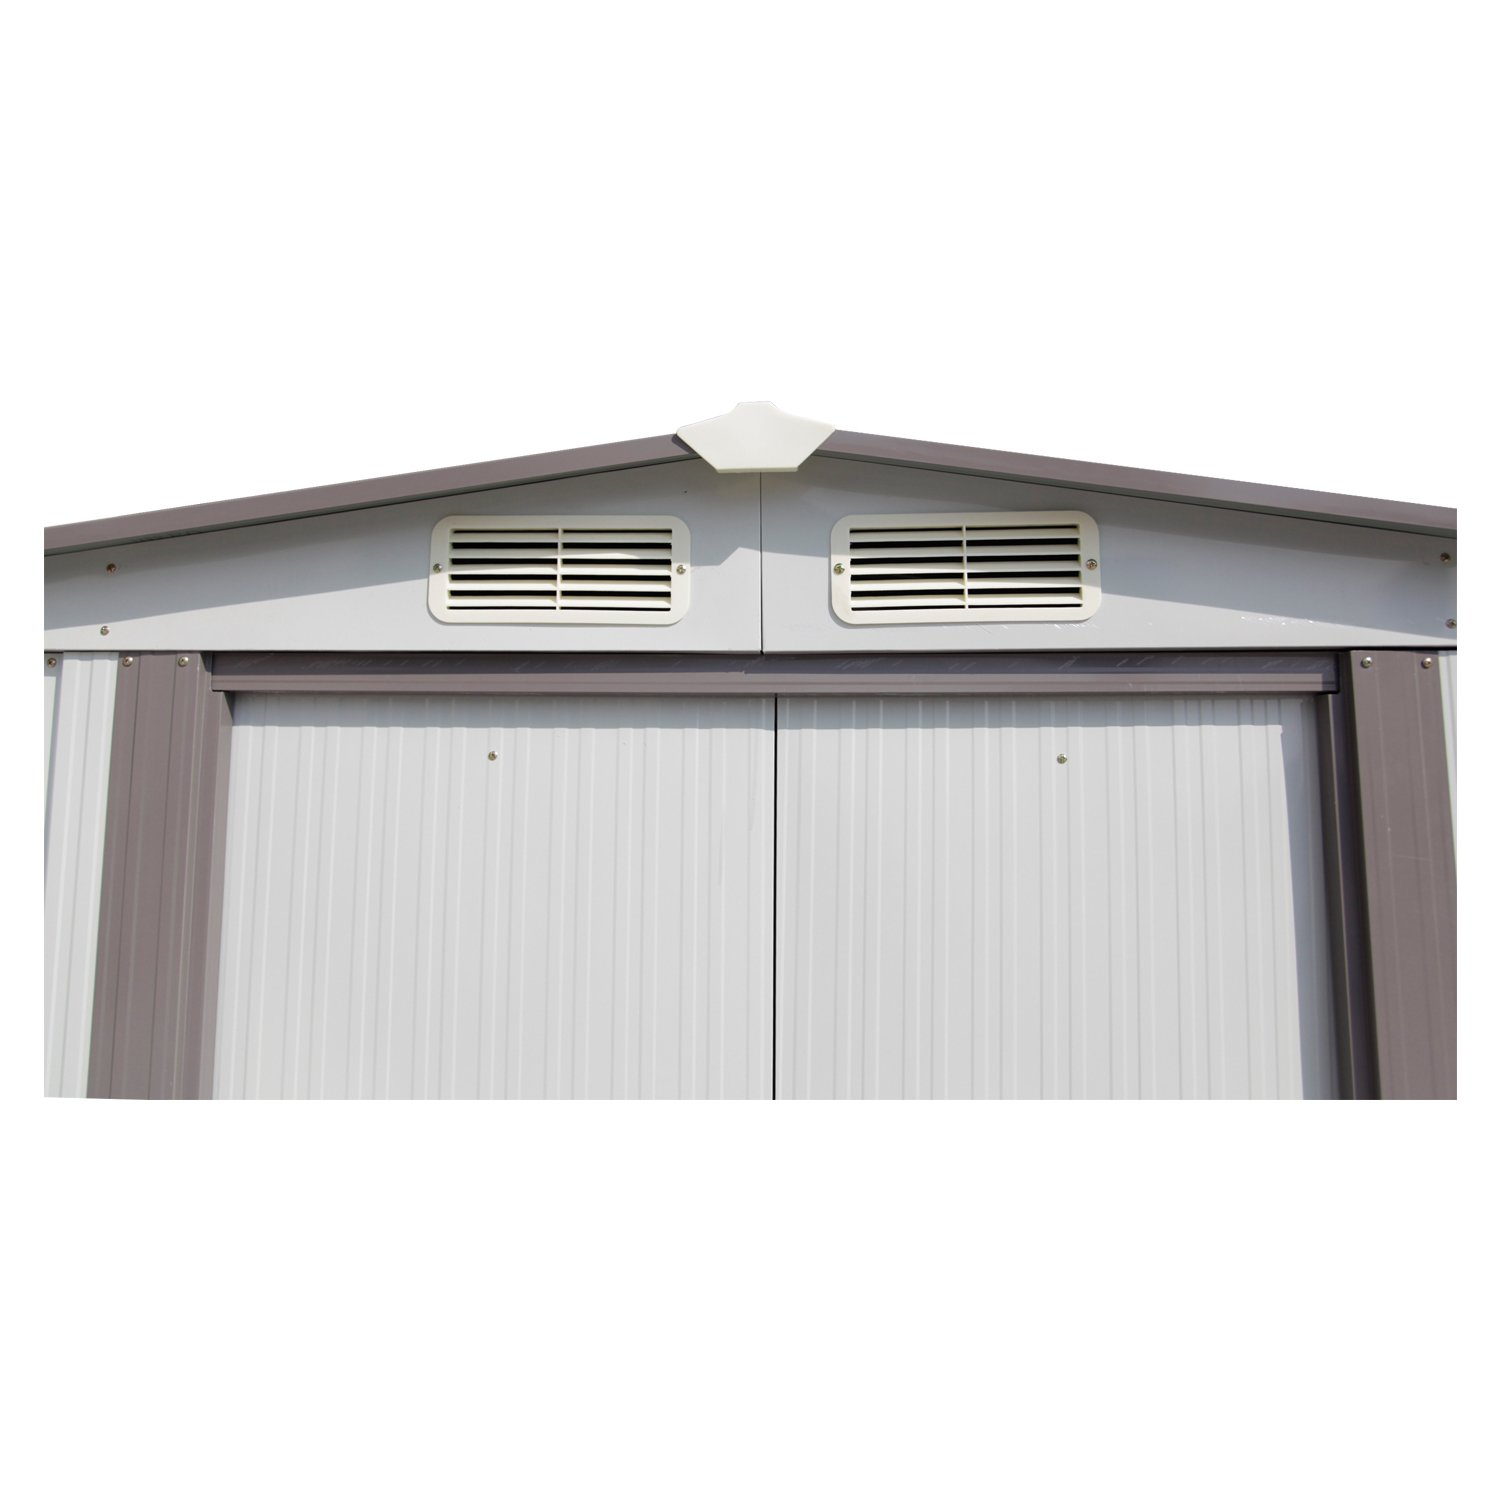 Kinbor New 8' x 6' Outdoor White Steel Garden Storage Utility Tool Shed Backyard Lawn Building Garage w/Sliding Door by Kinbor (Image #8)